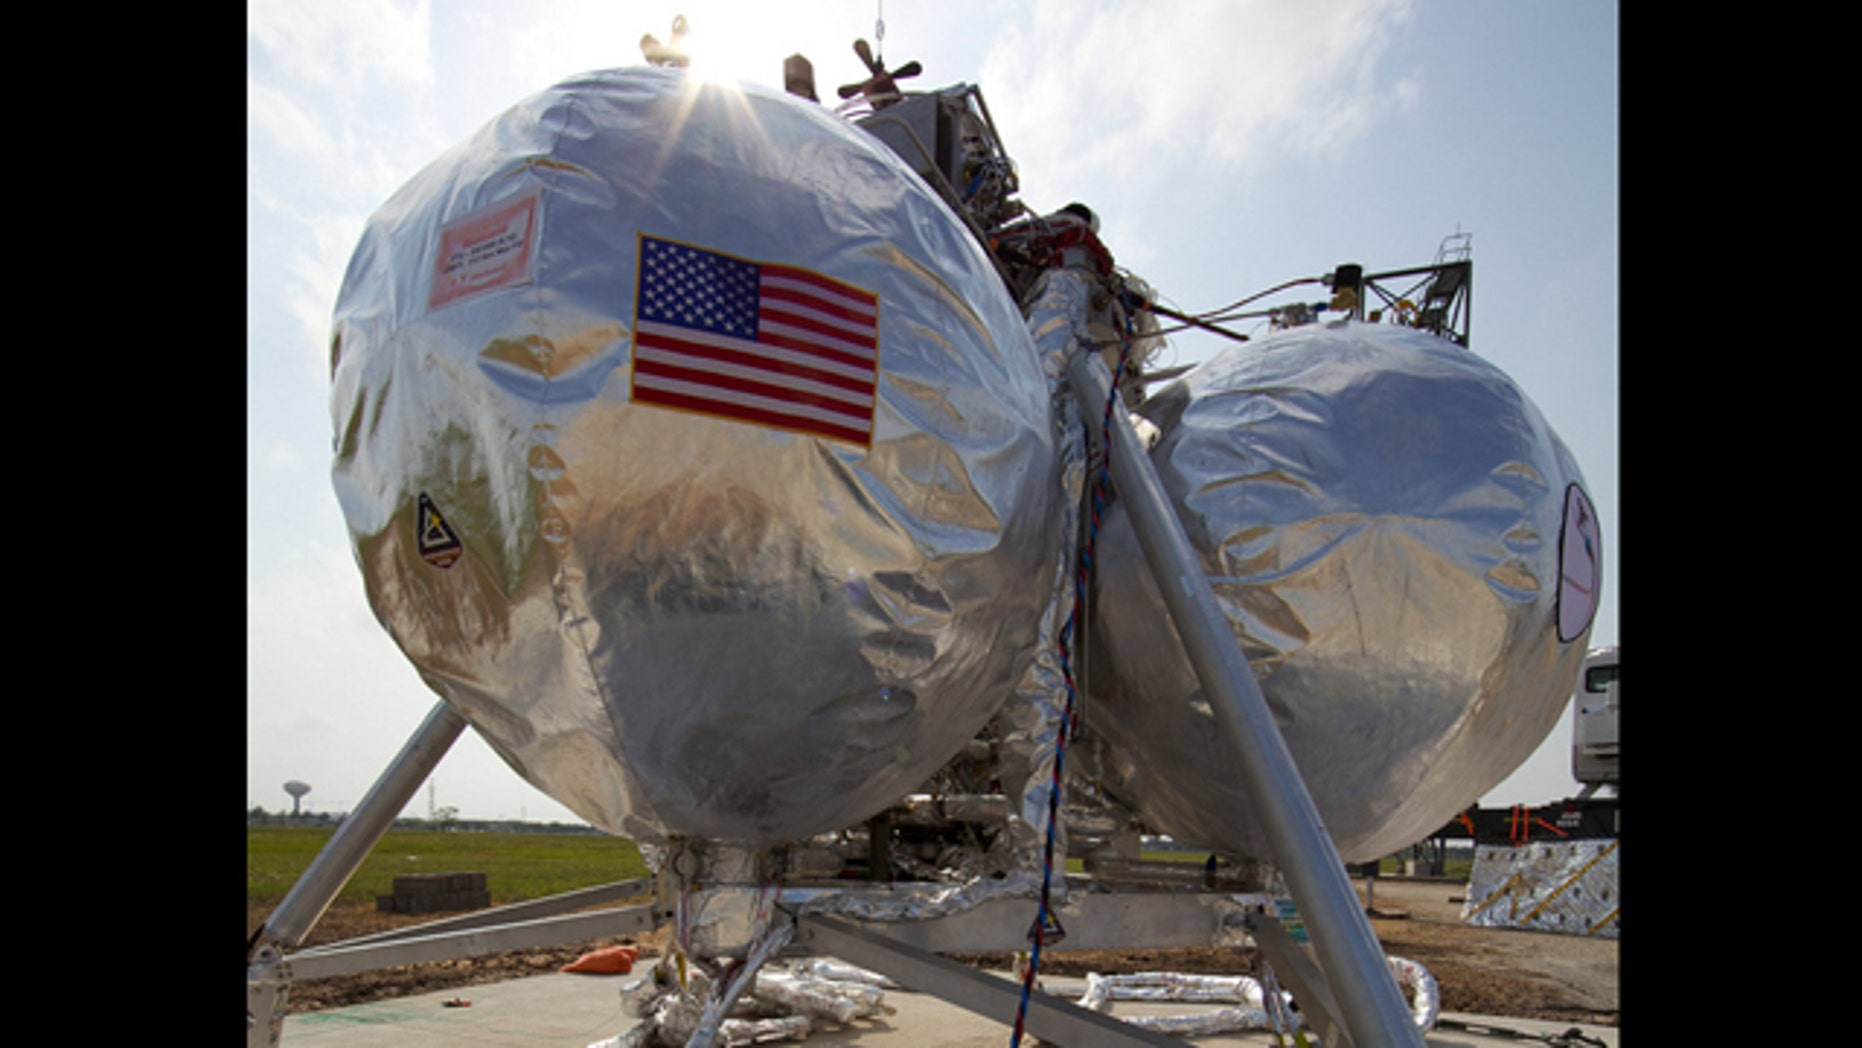 NASA's Morpheus prototype lander rests on its launch pad waiting for a test at Johnson Space Center in Houston.